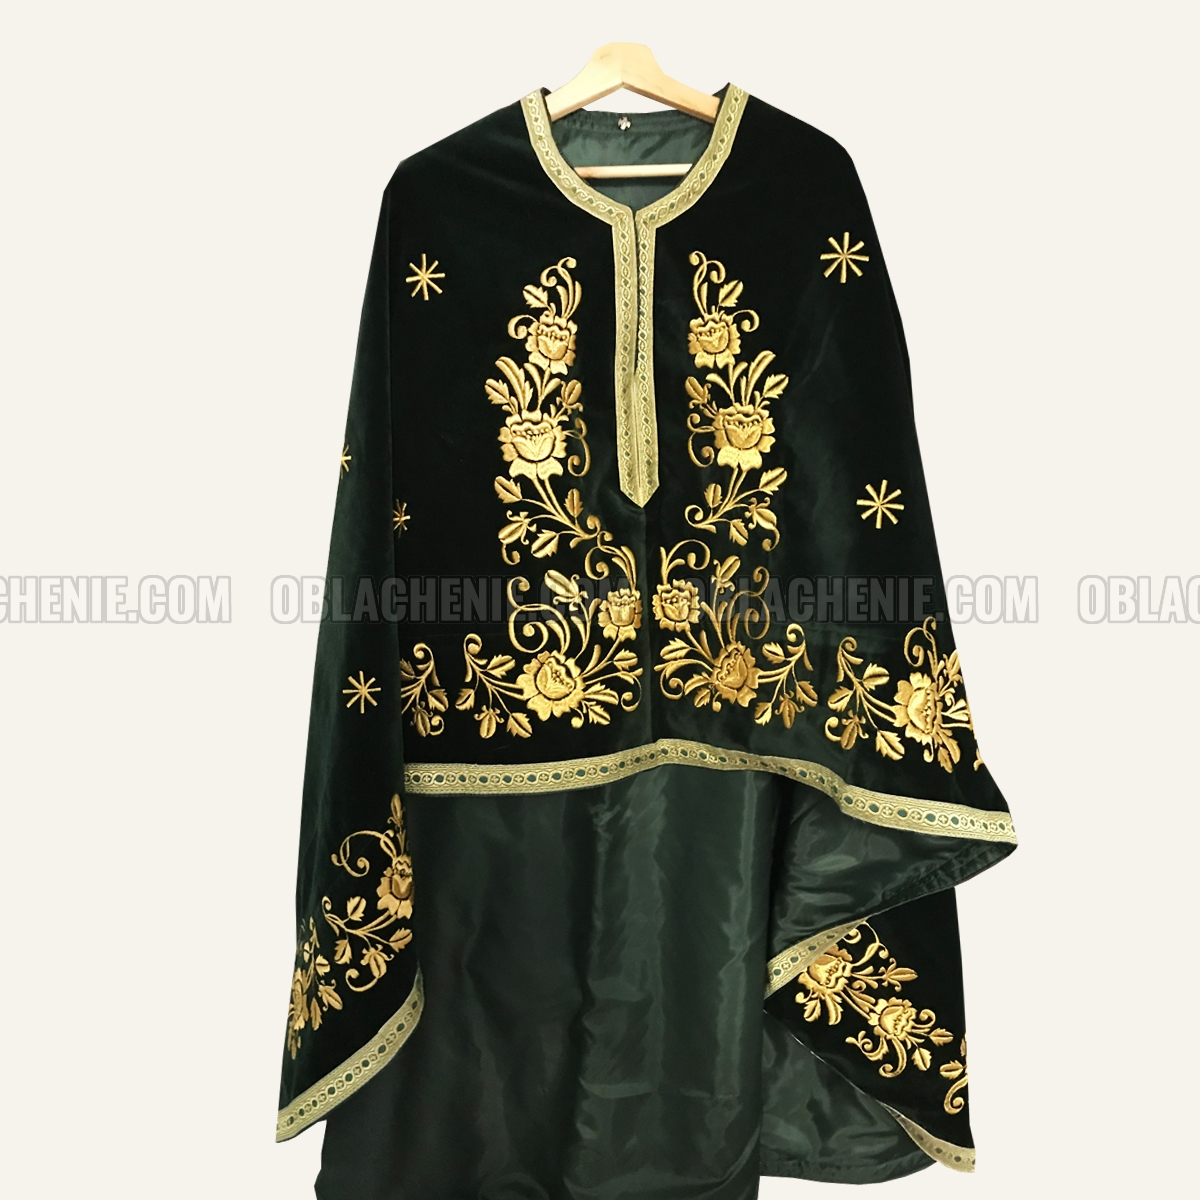 Embroidered priest's vestments 10229